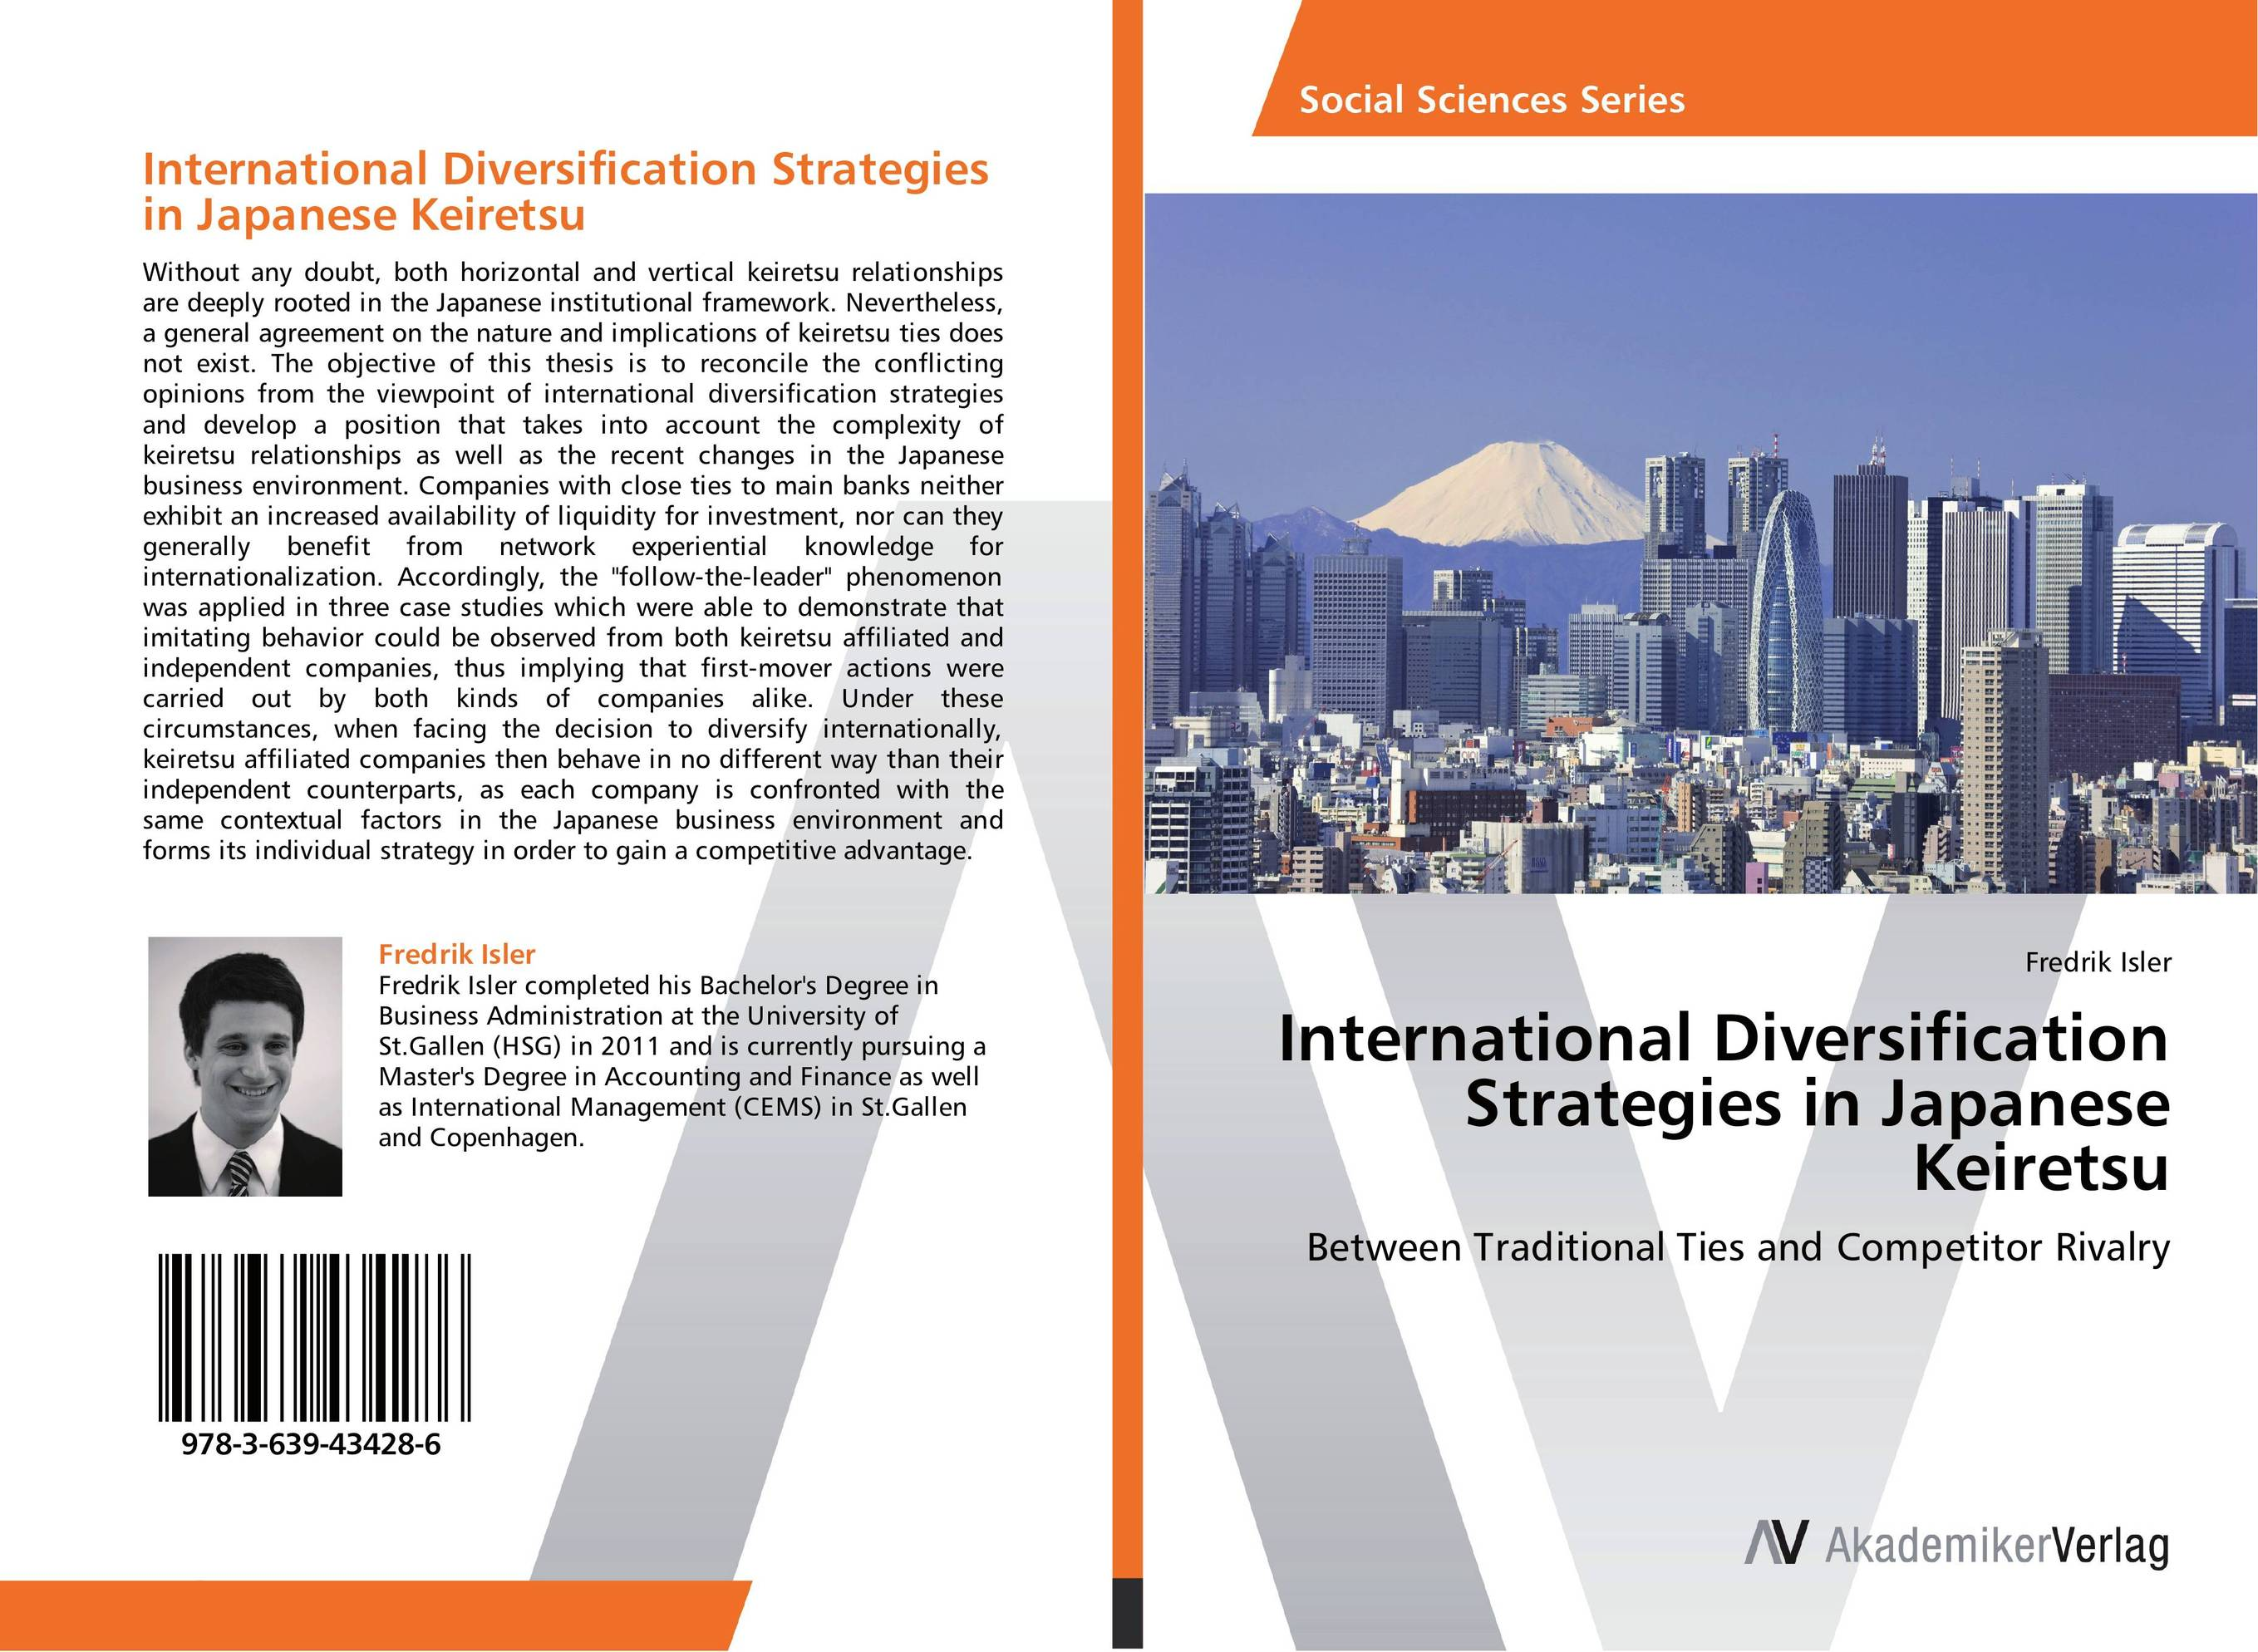 International Diversification Strategies in Japanese Keiretsu yozo hasegawa rediscovering japanese business leadership 15 japanese managers and the companies they re leading to new growth